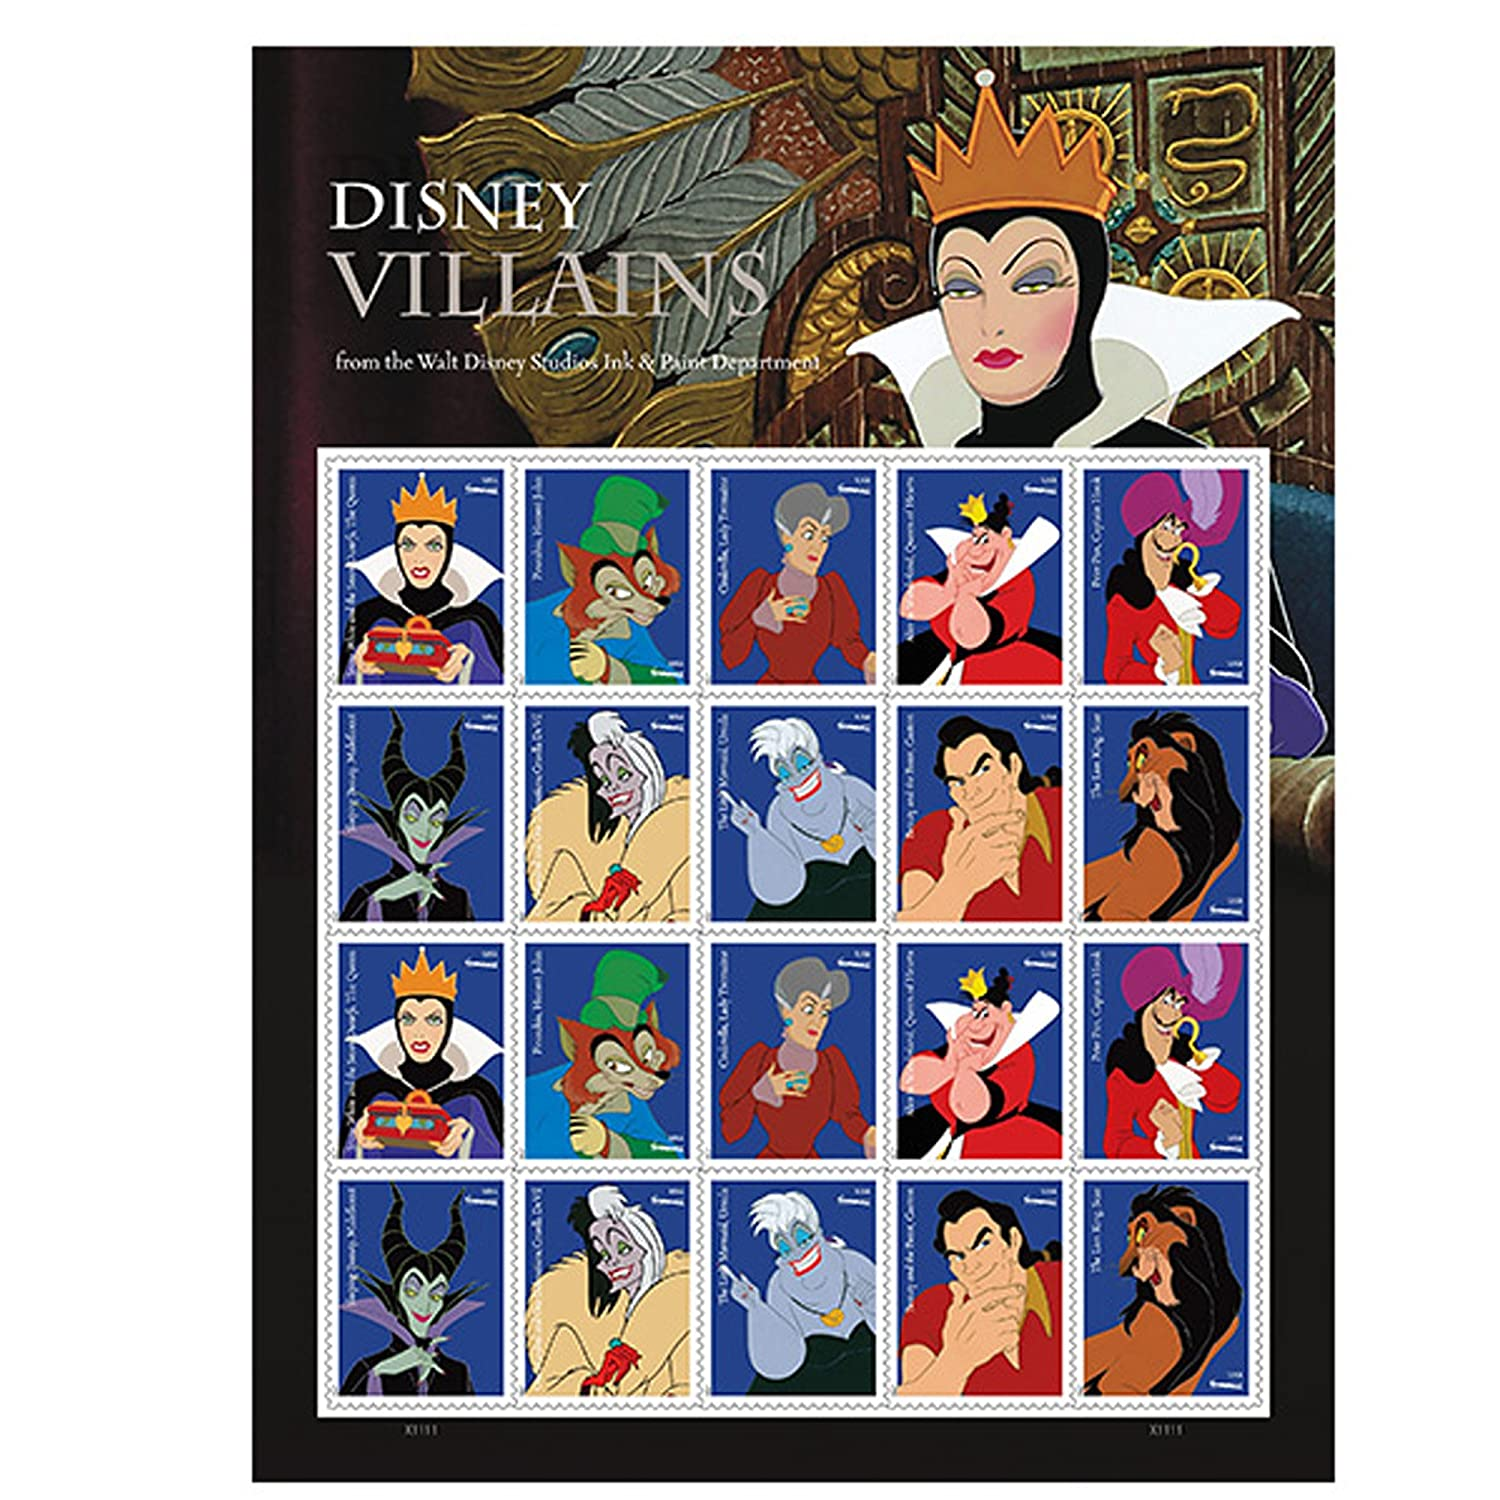 Walt Disney Villains Sheet of 20 Forever USPS First Class one Ounce Postage Stamps Party Celebration Wedding